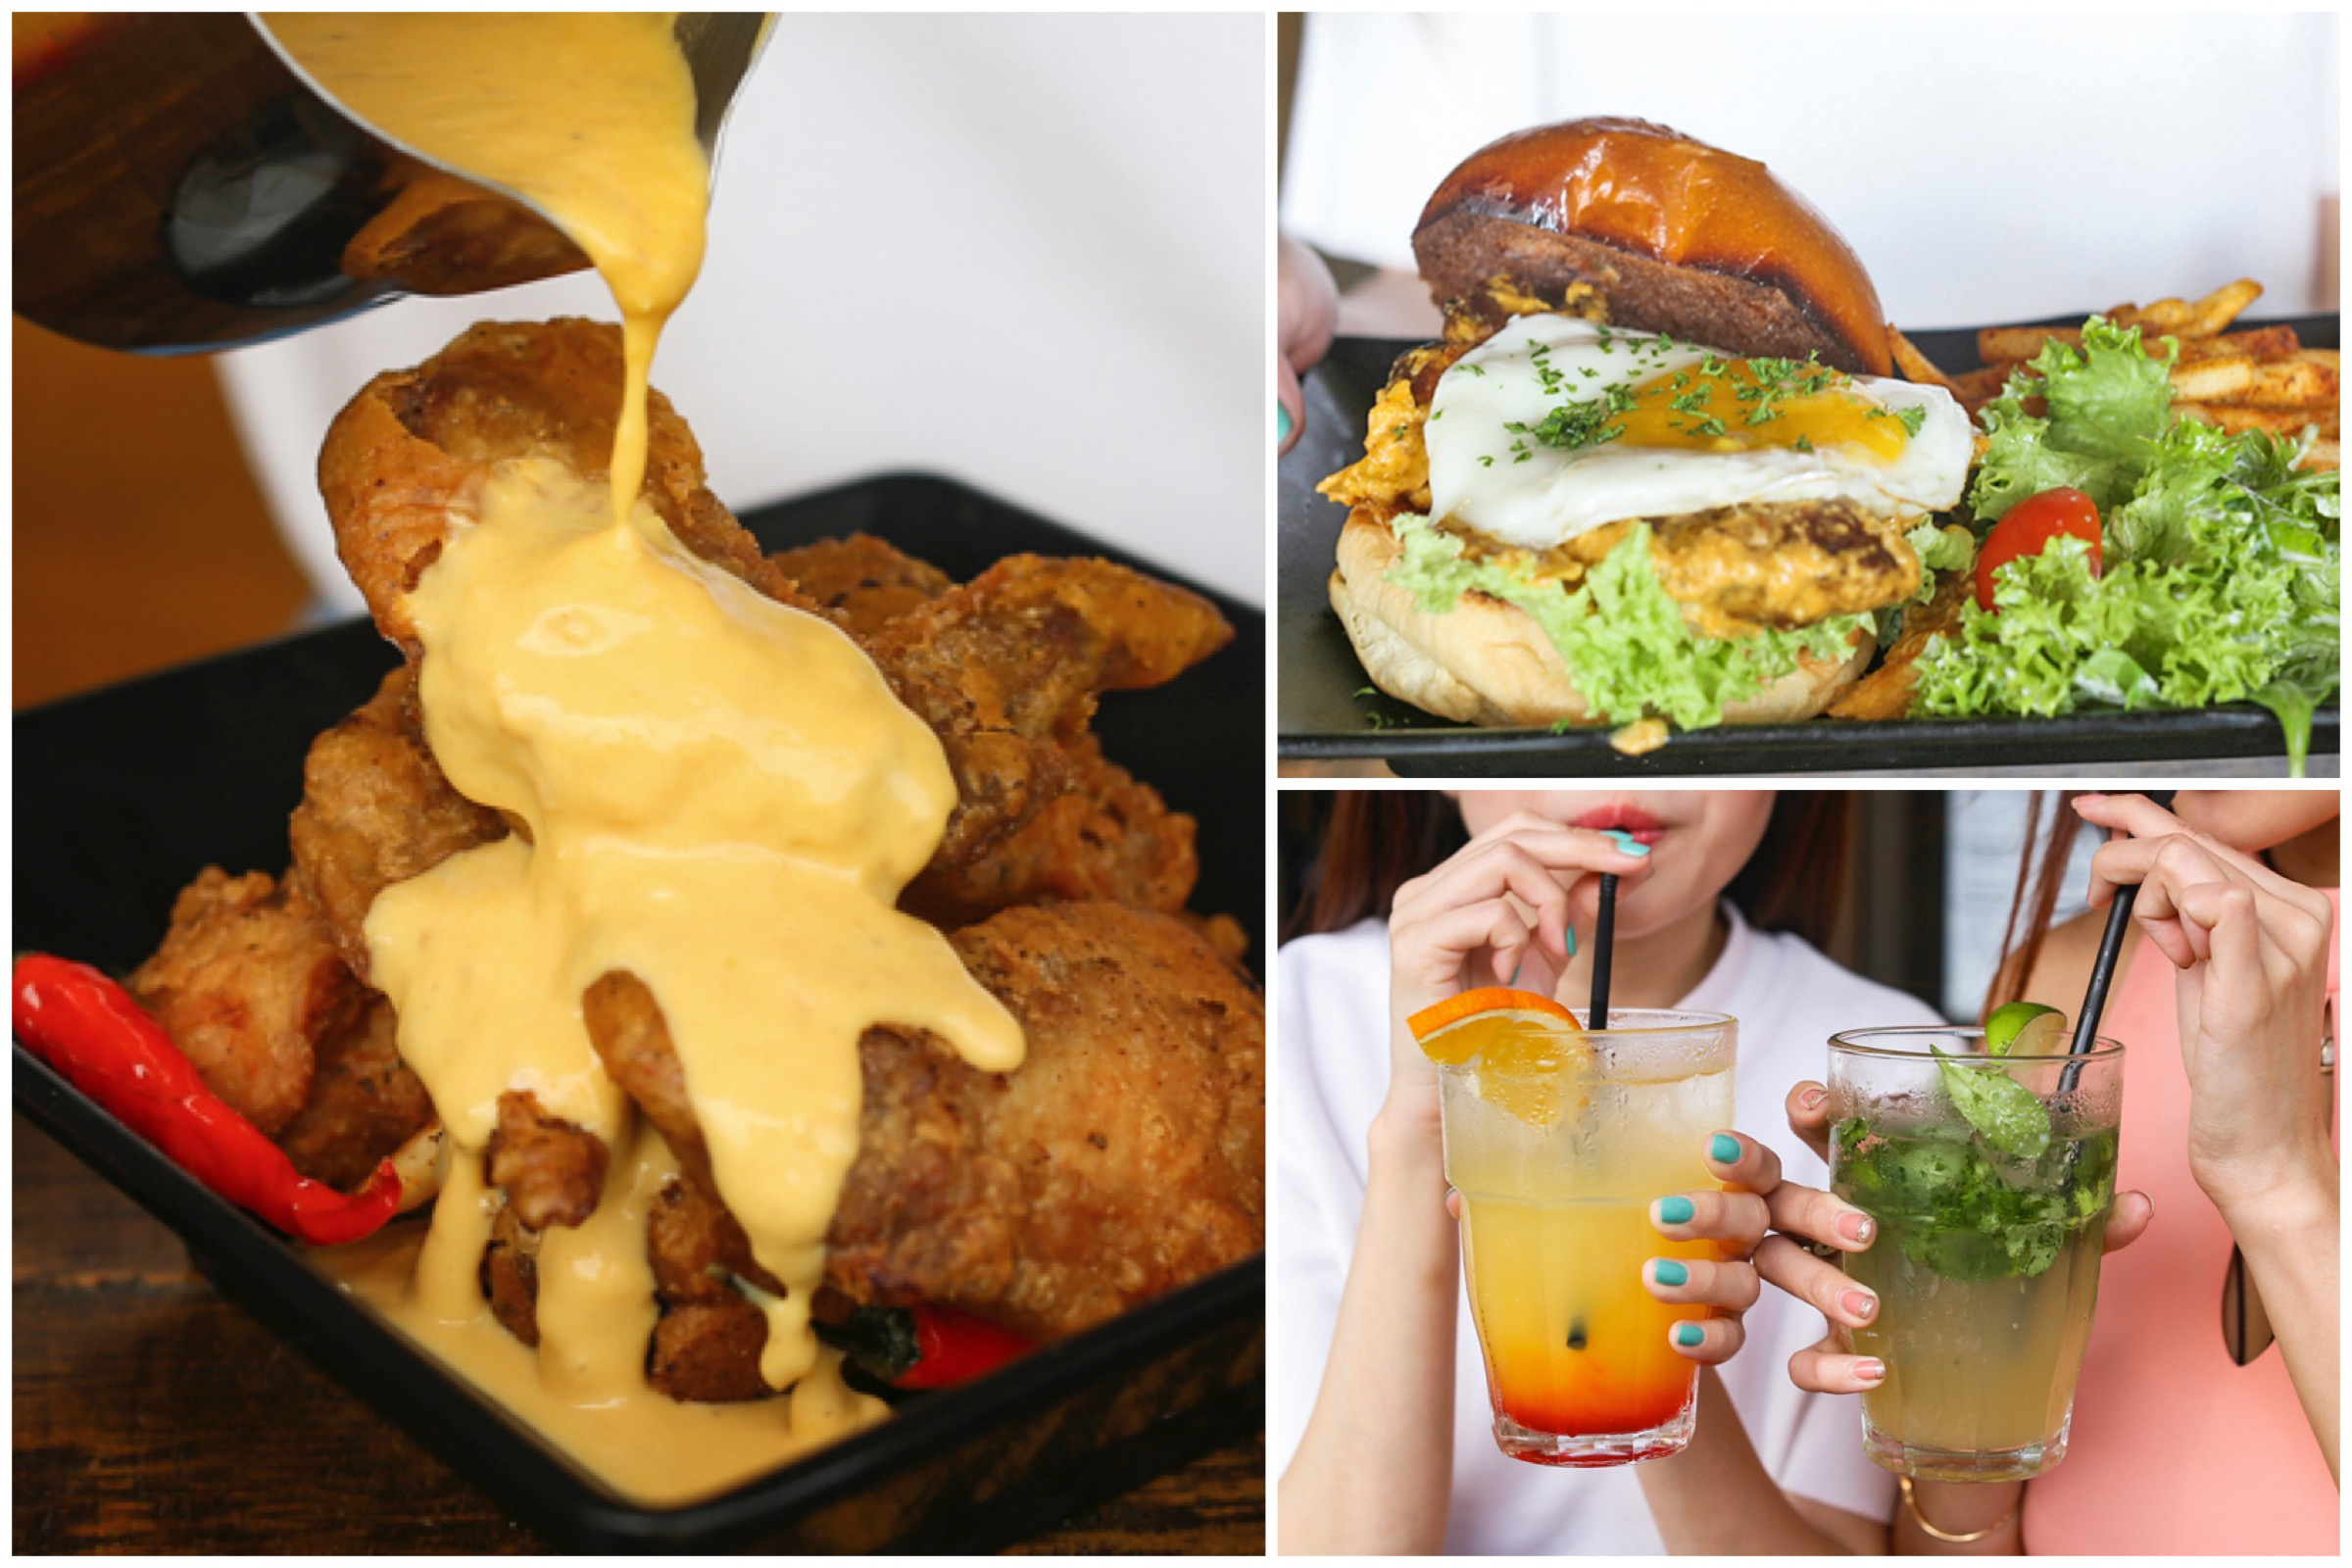 Burp Kitchen & Bar – Comfort Food And Inexpensive Drinks At Tanjong Katong & Bedok Reservoir